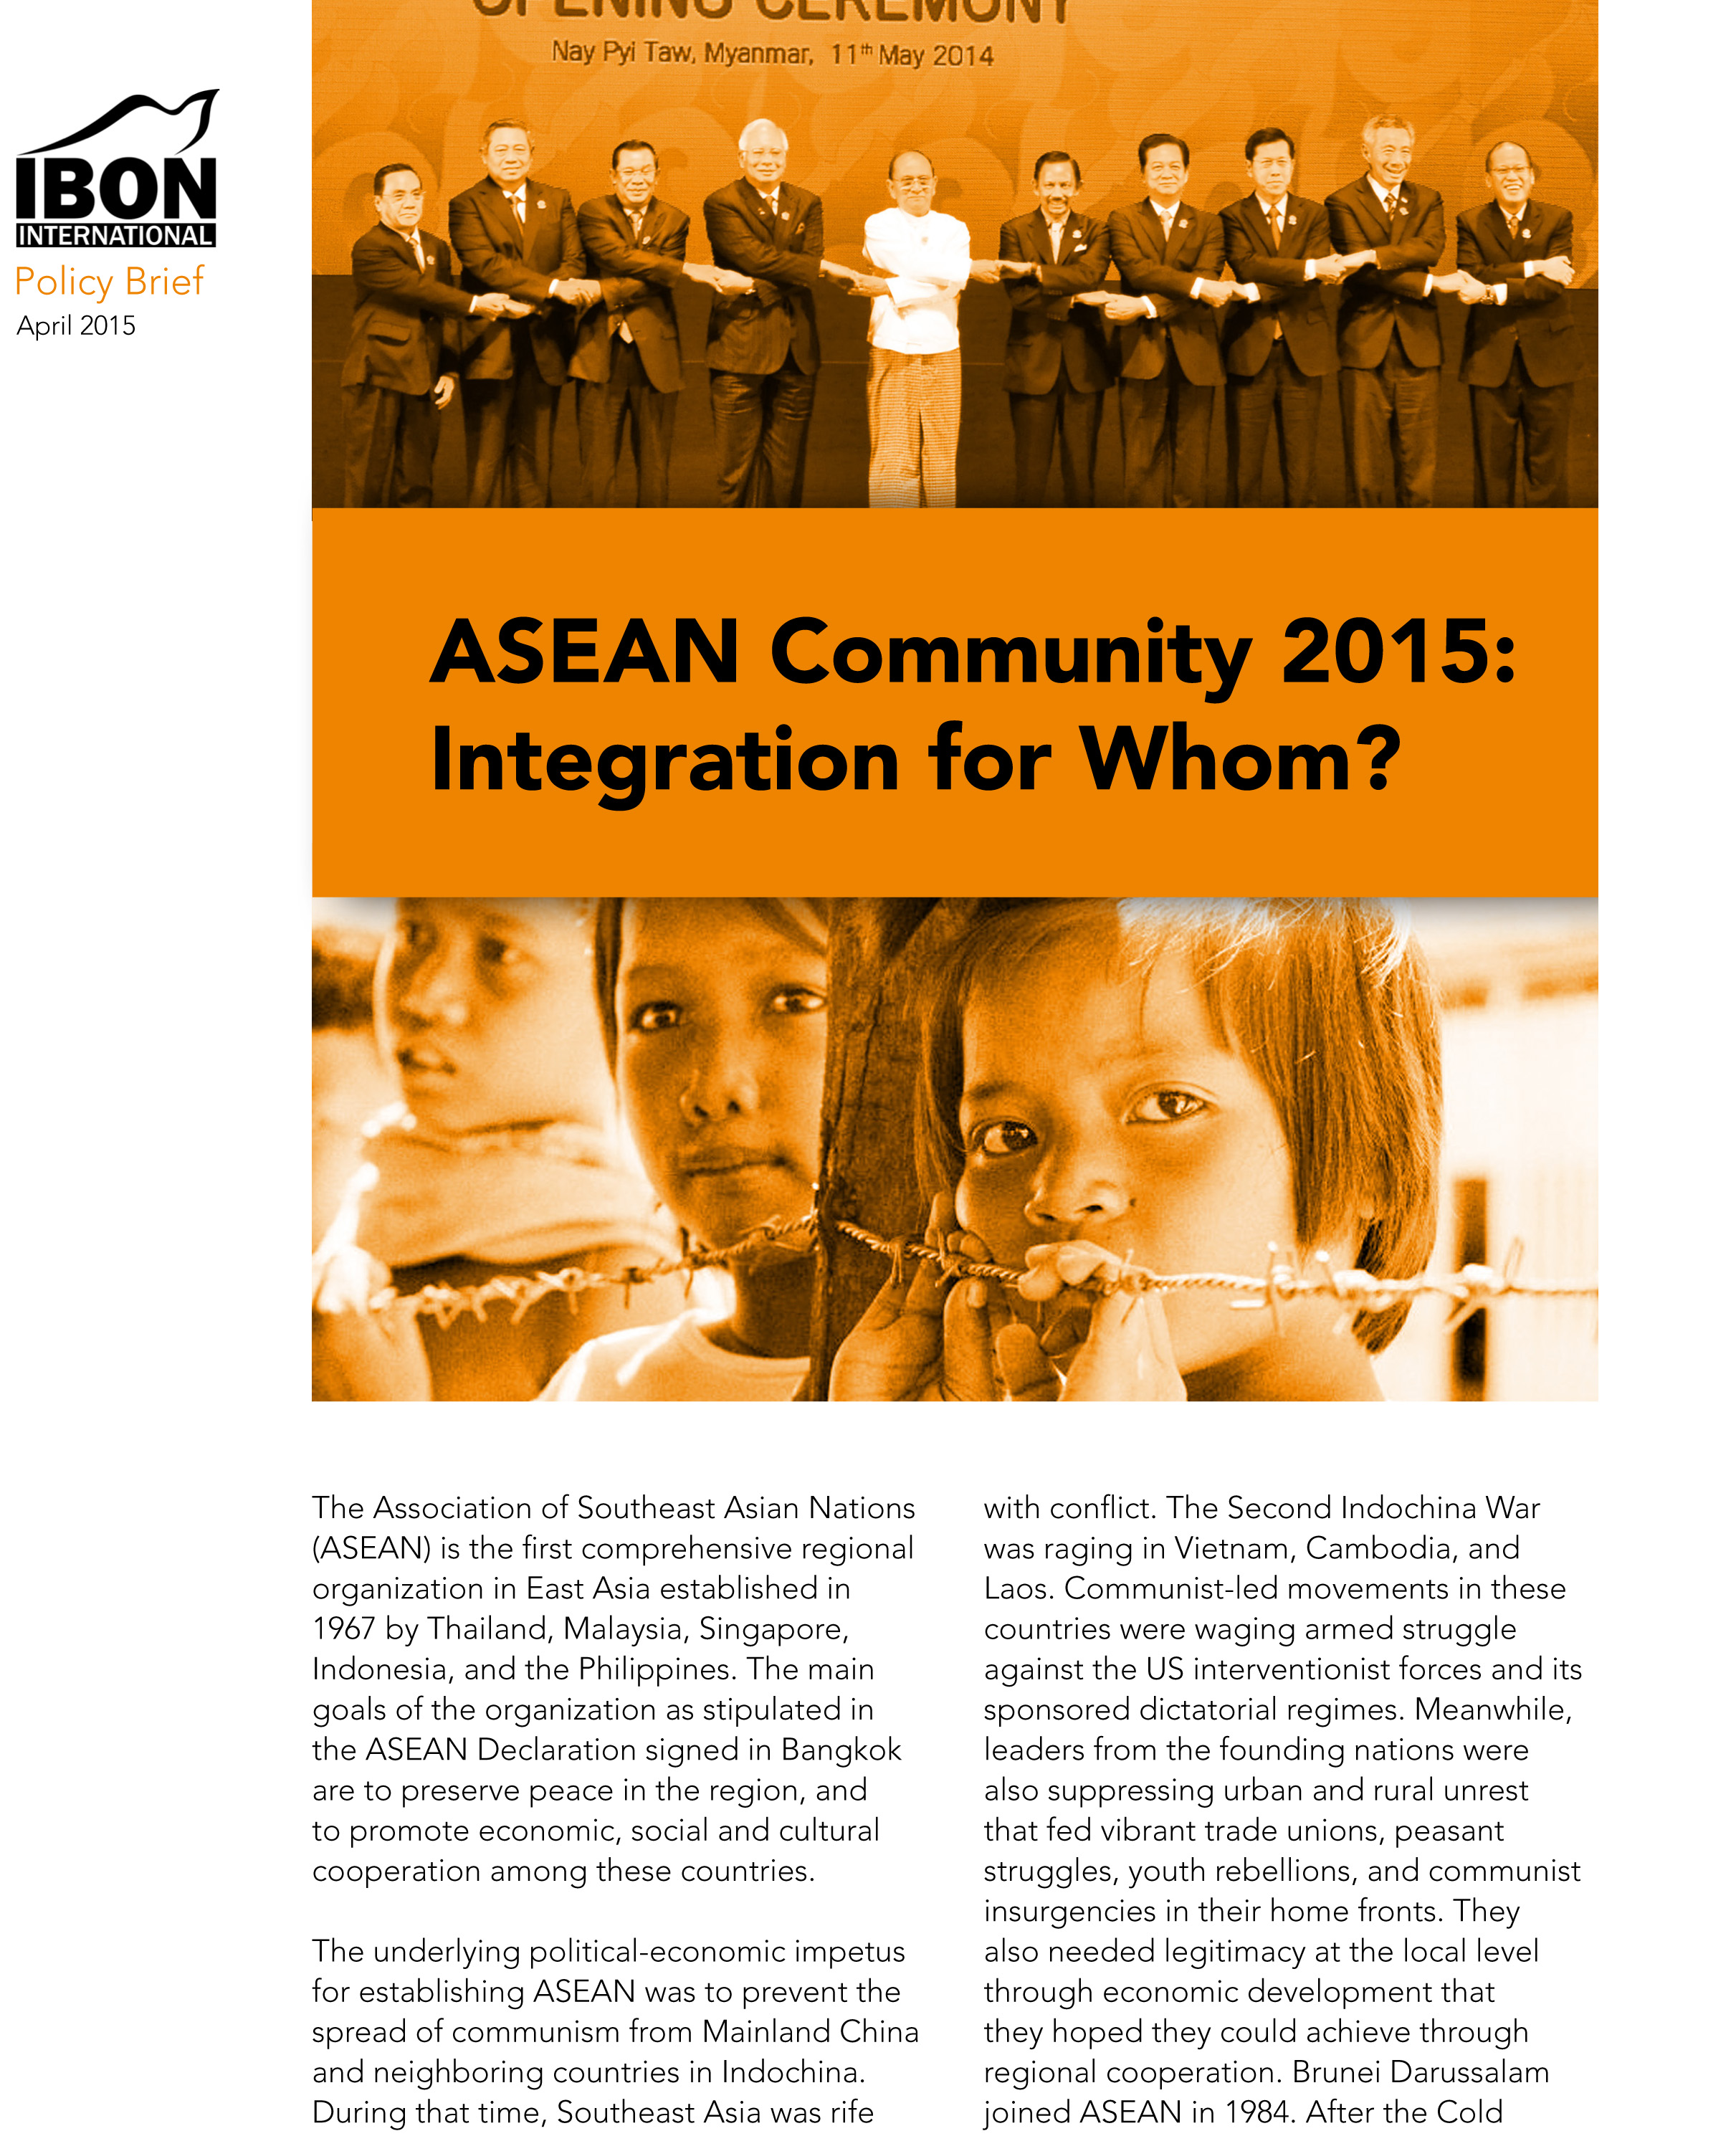 ASEAN Community 2015: Integration for Whom?